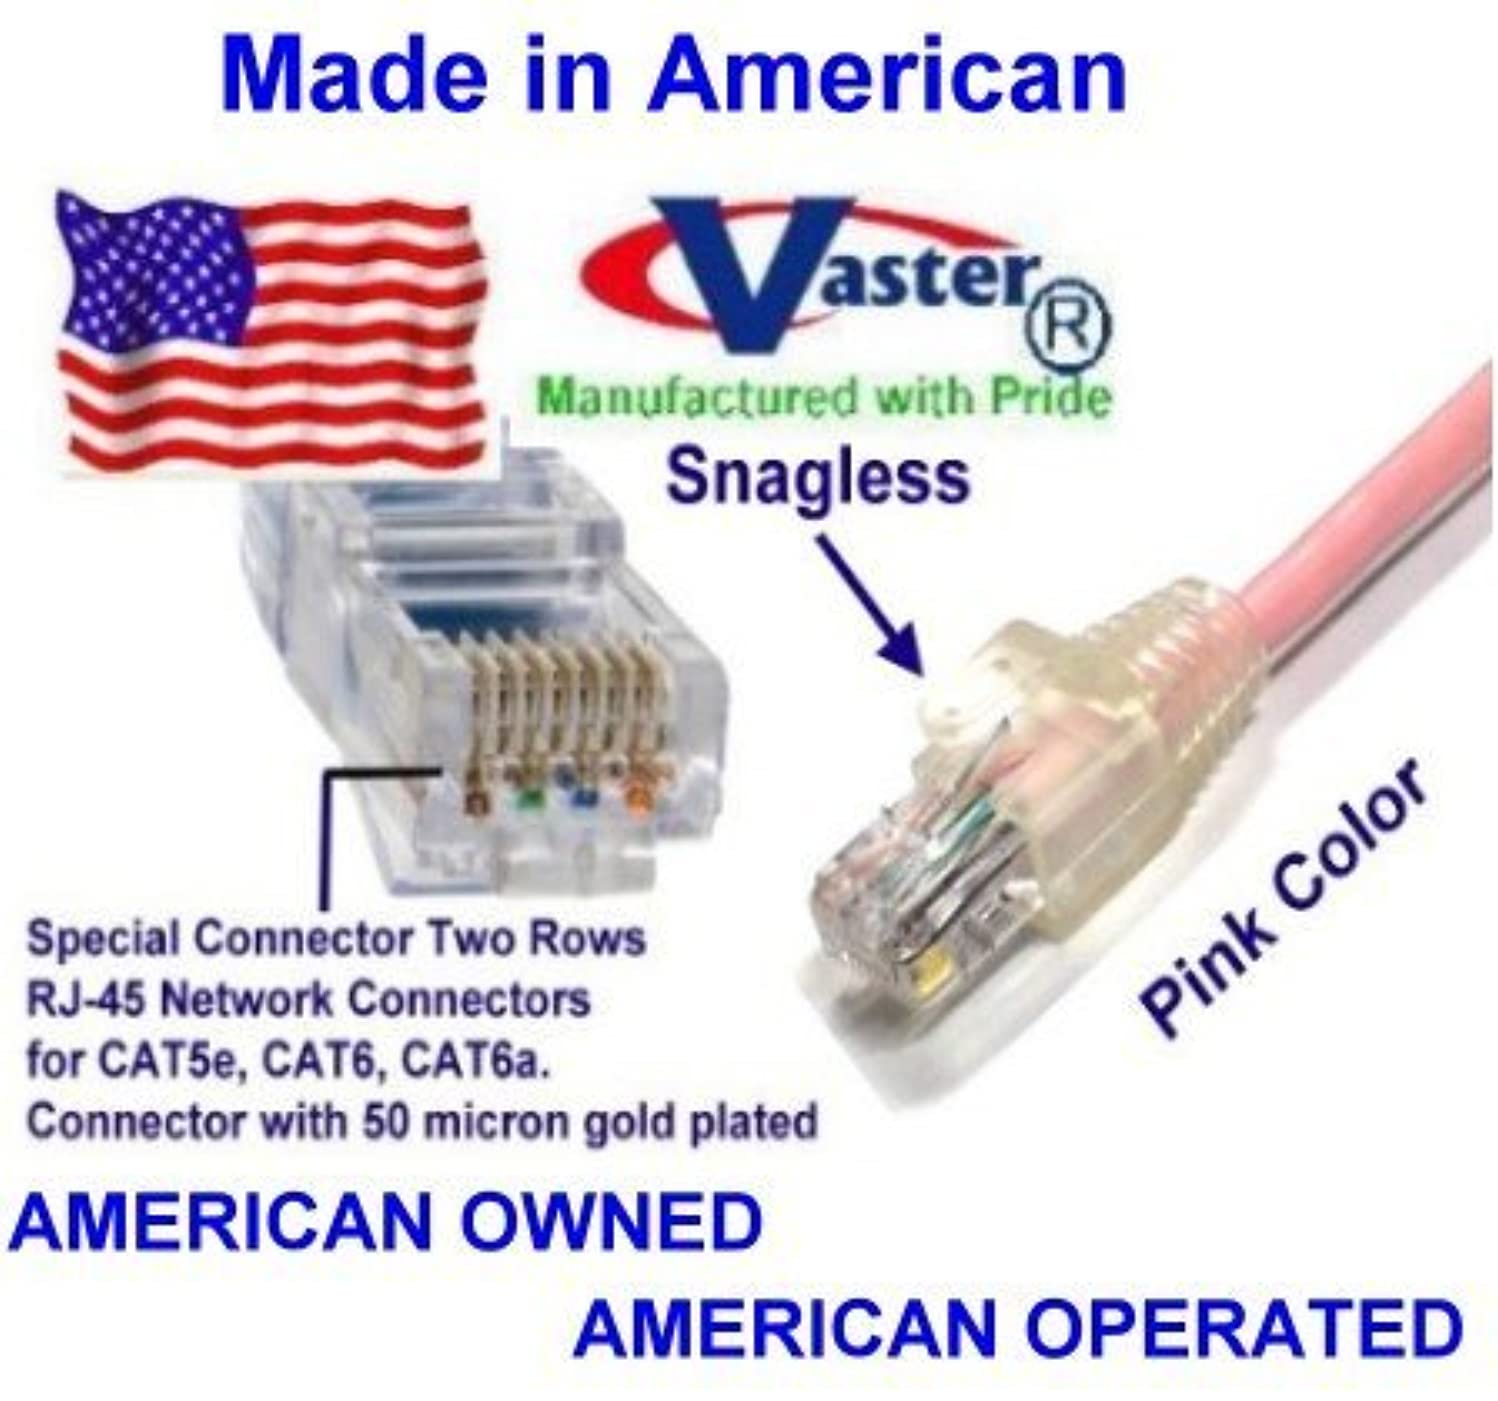 SuperEcable - USA-0676 - 36 Ft UTP Cat5e - Made in USA - PINK – UL 24Awg Pure Copper – Ethernet Network Patch Cable